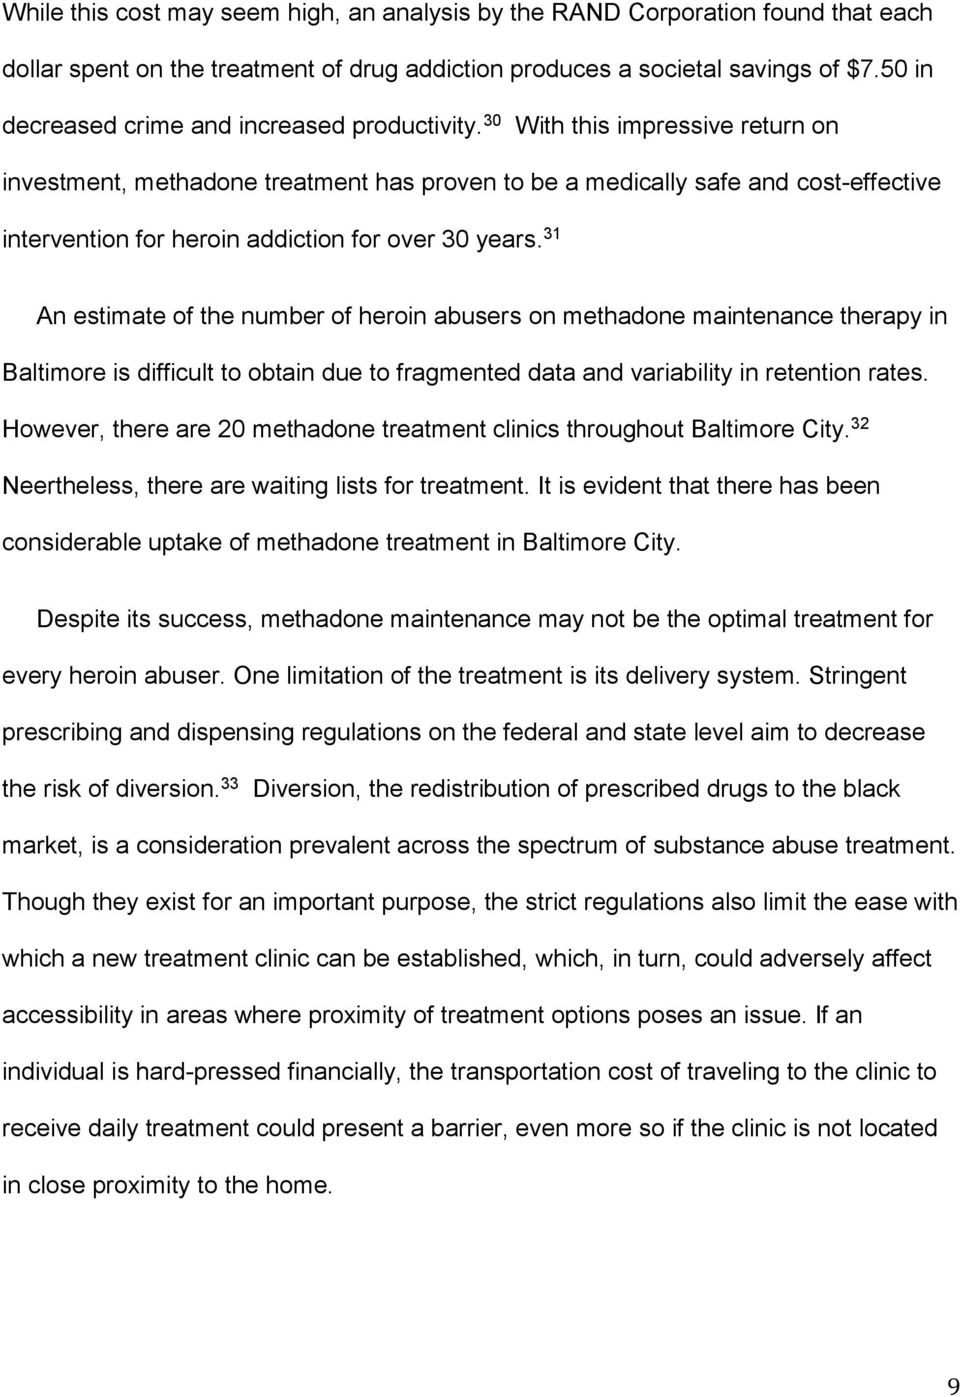 30 With this impressive return on investment, methadone treatment has proven to be a medically safe and cost-effective intervention for heroin addiction for over 30 years.